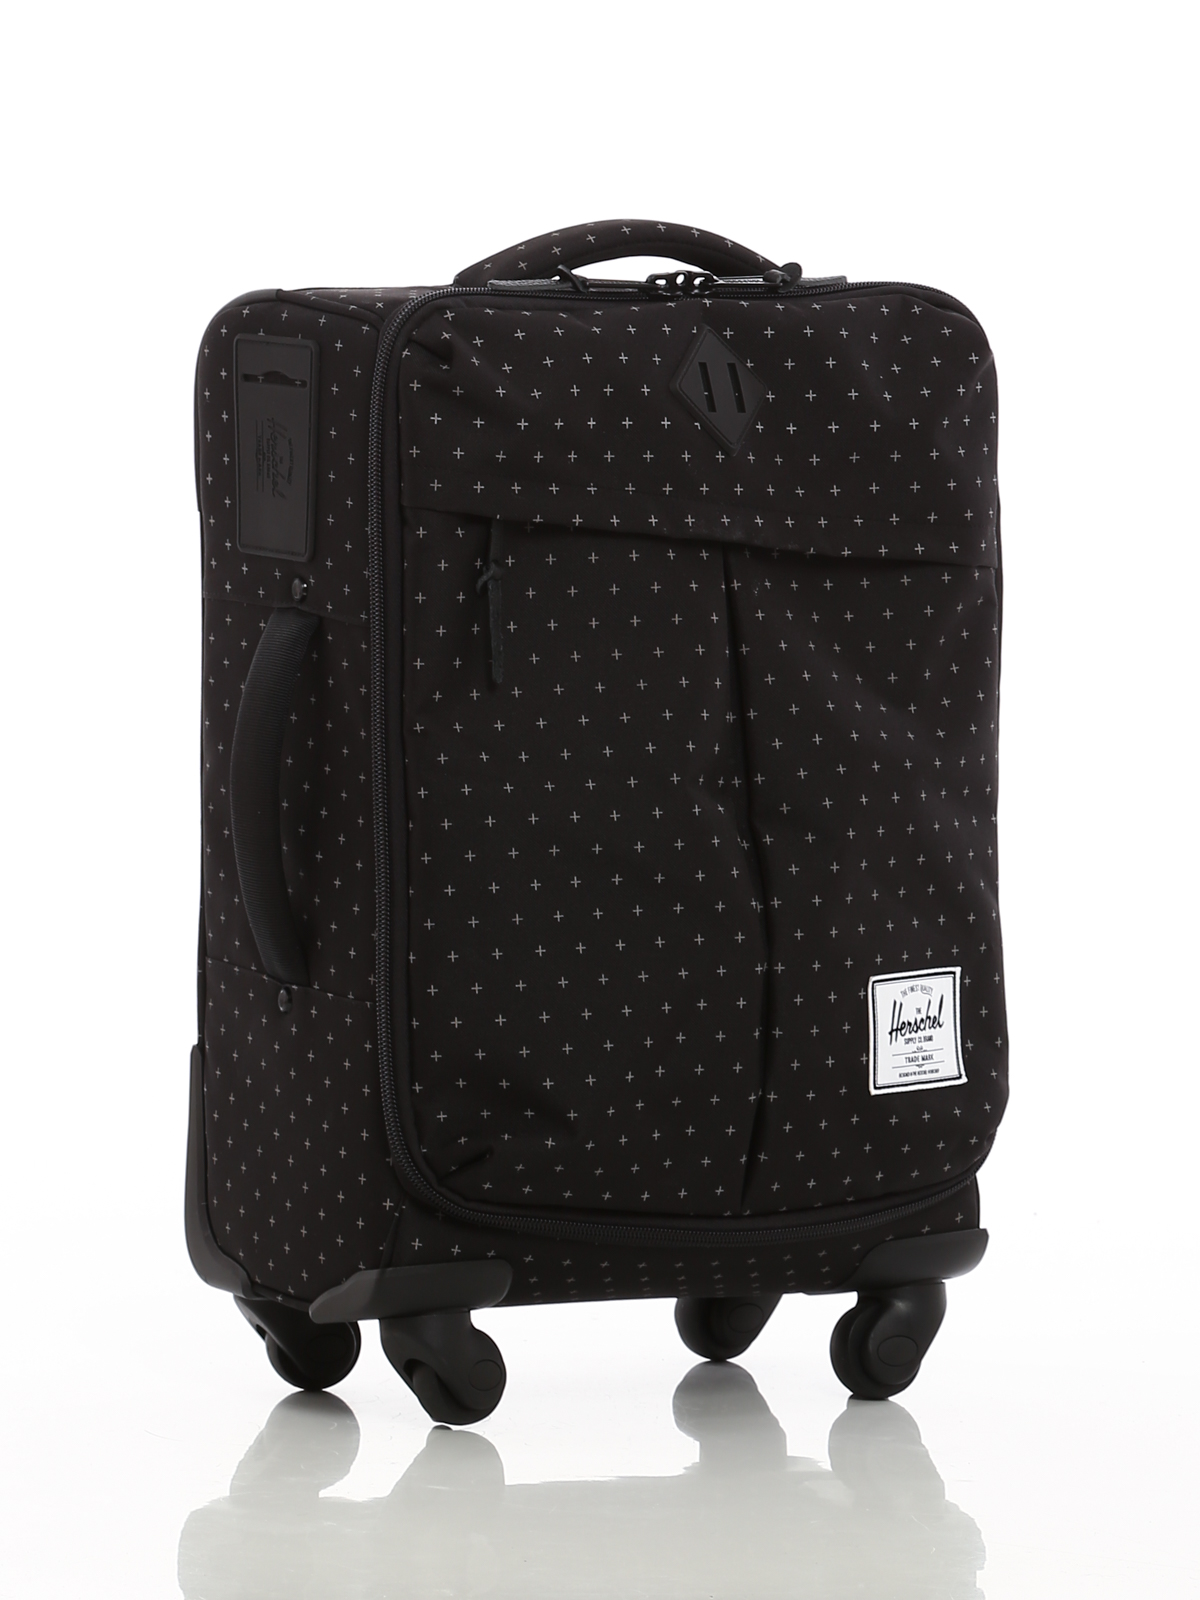 ee991a27a7c7 Herschel - Highland patterned carry-on - Luggage & Travel bags ...